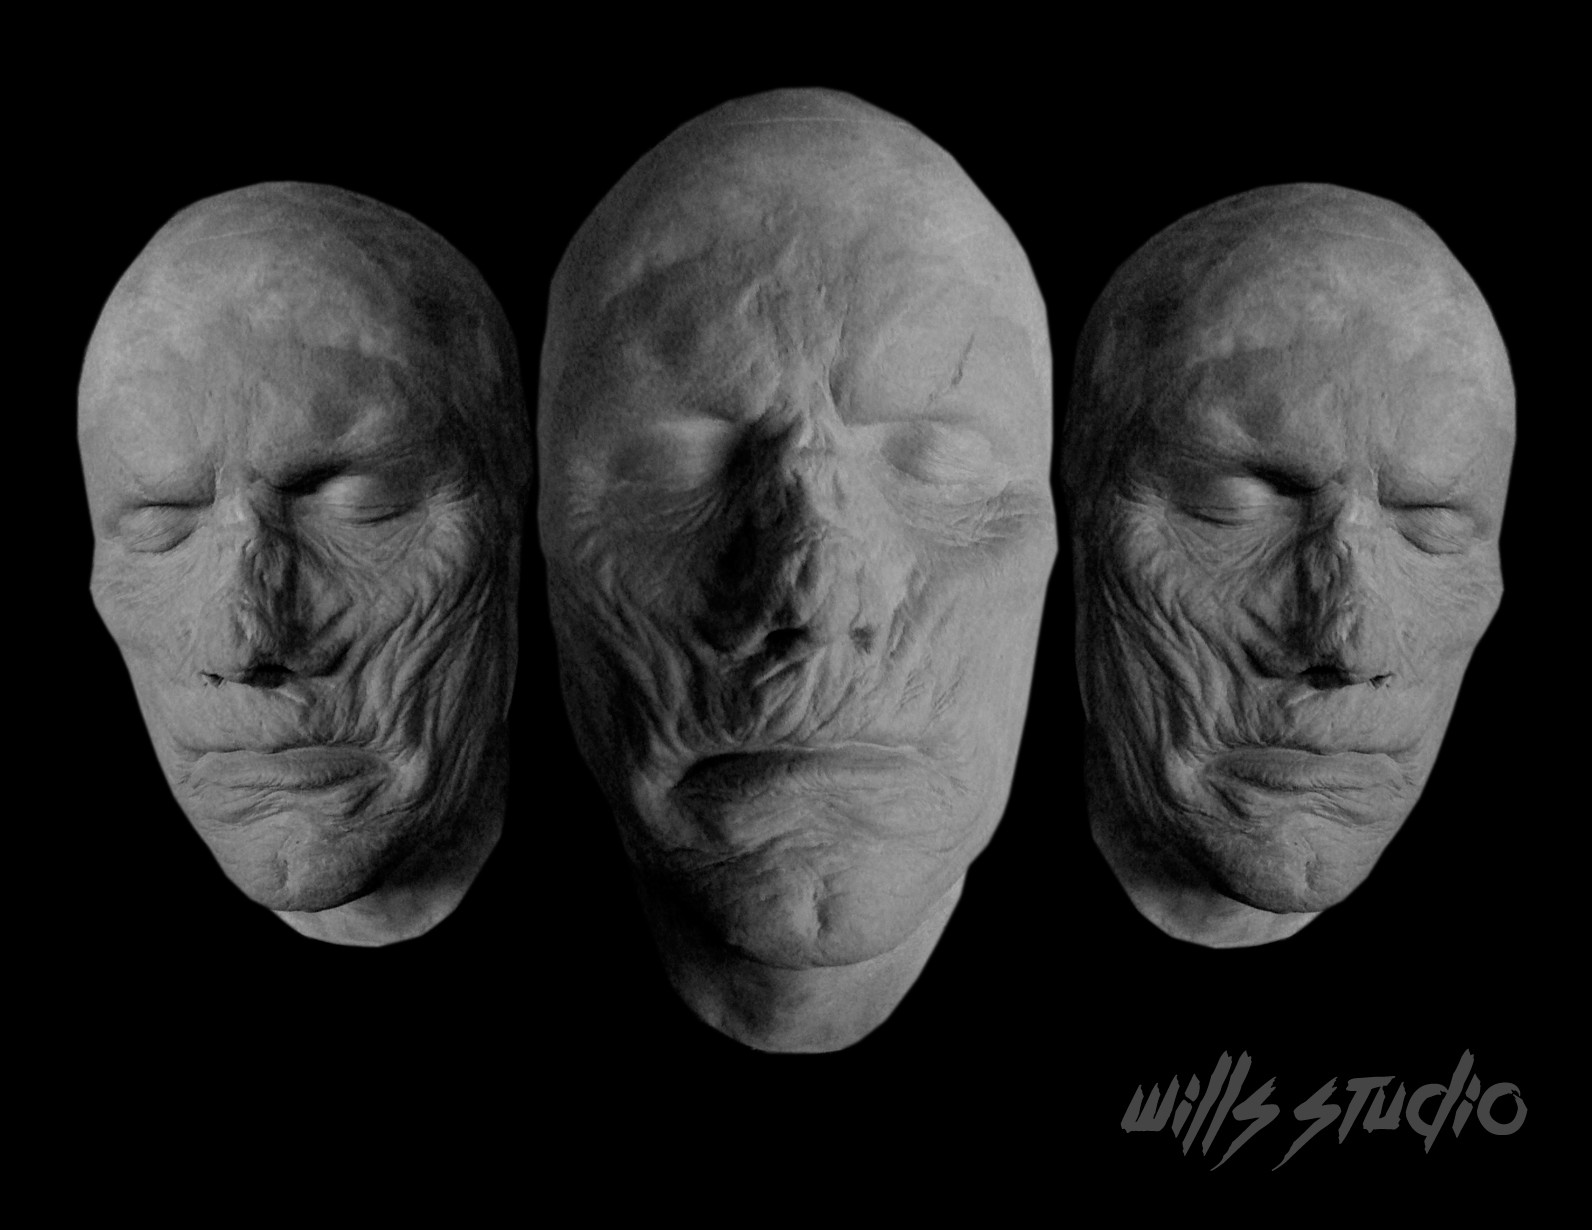 Charles wills zombiesculptprosthetic